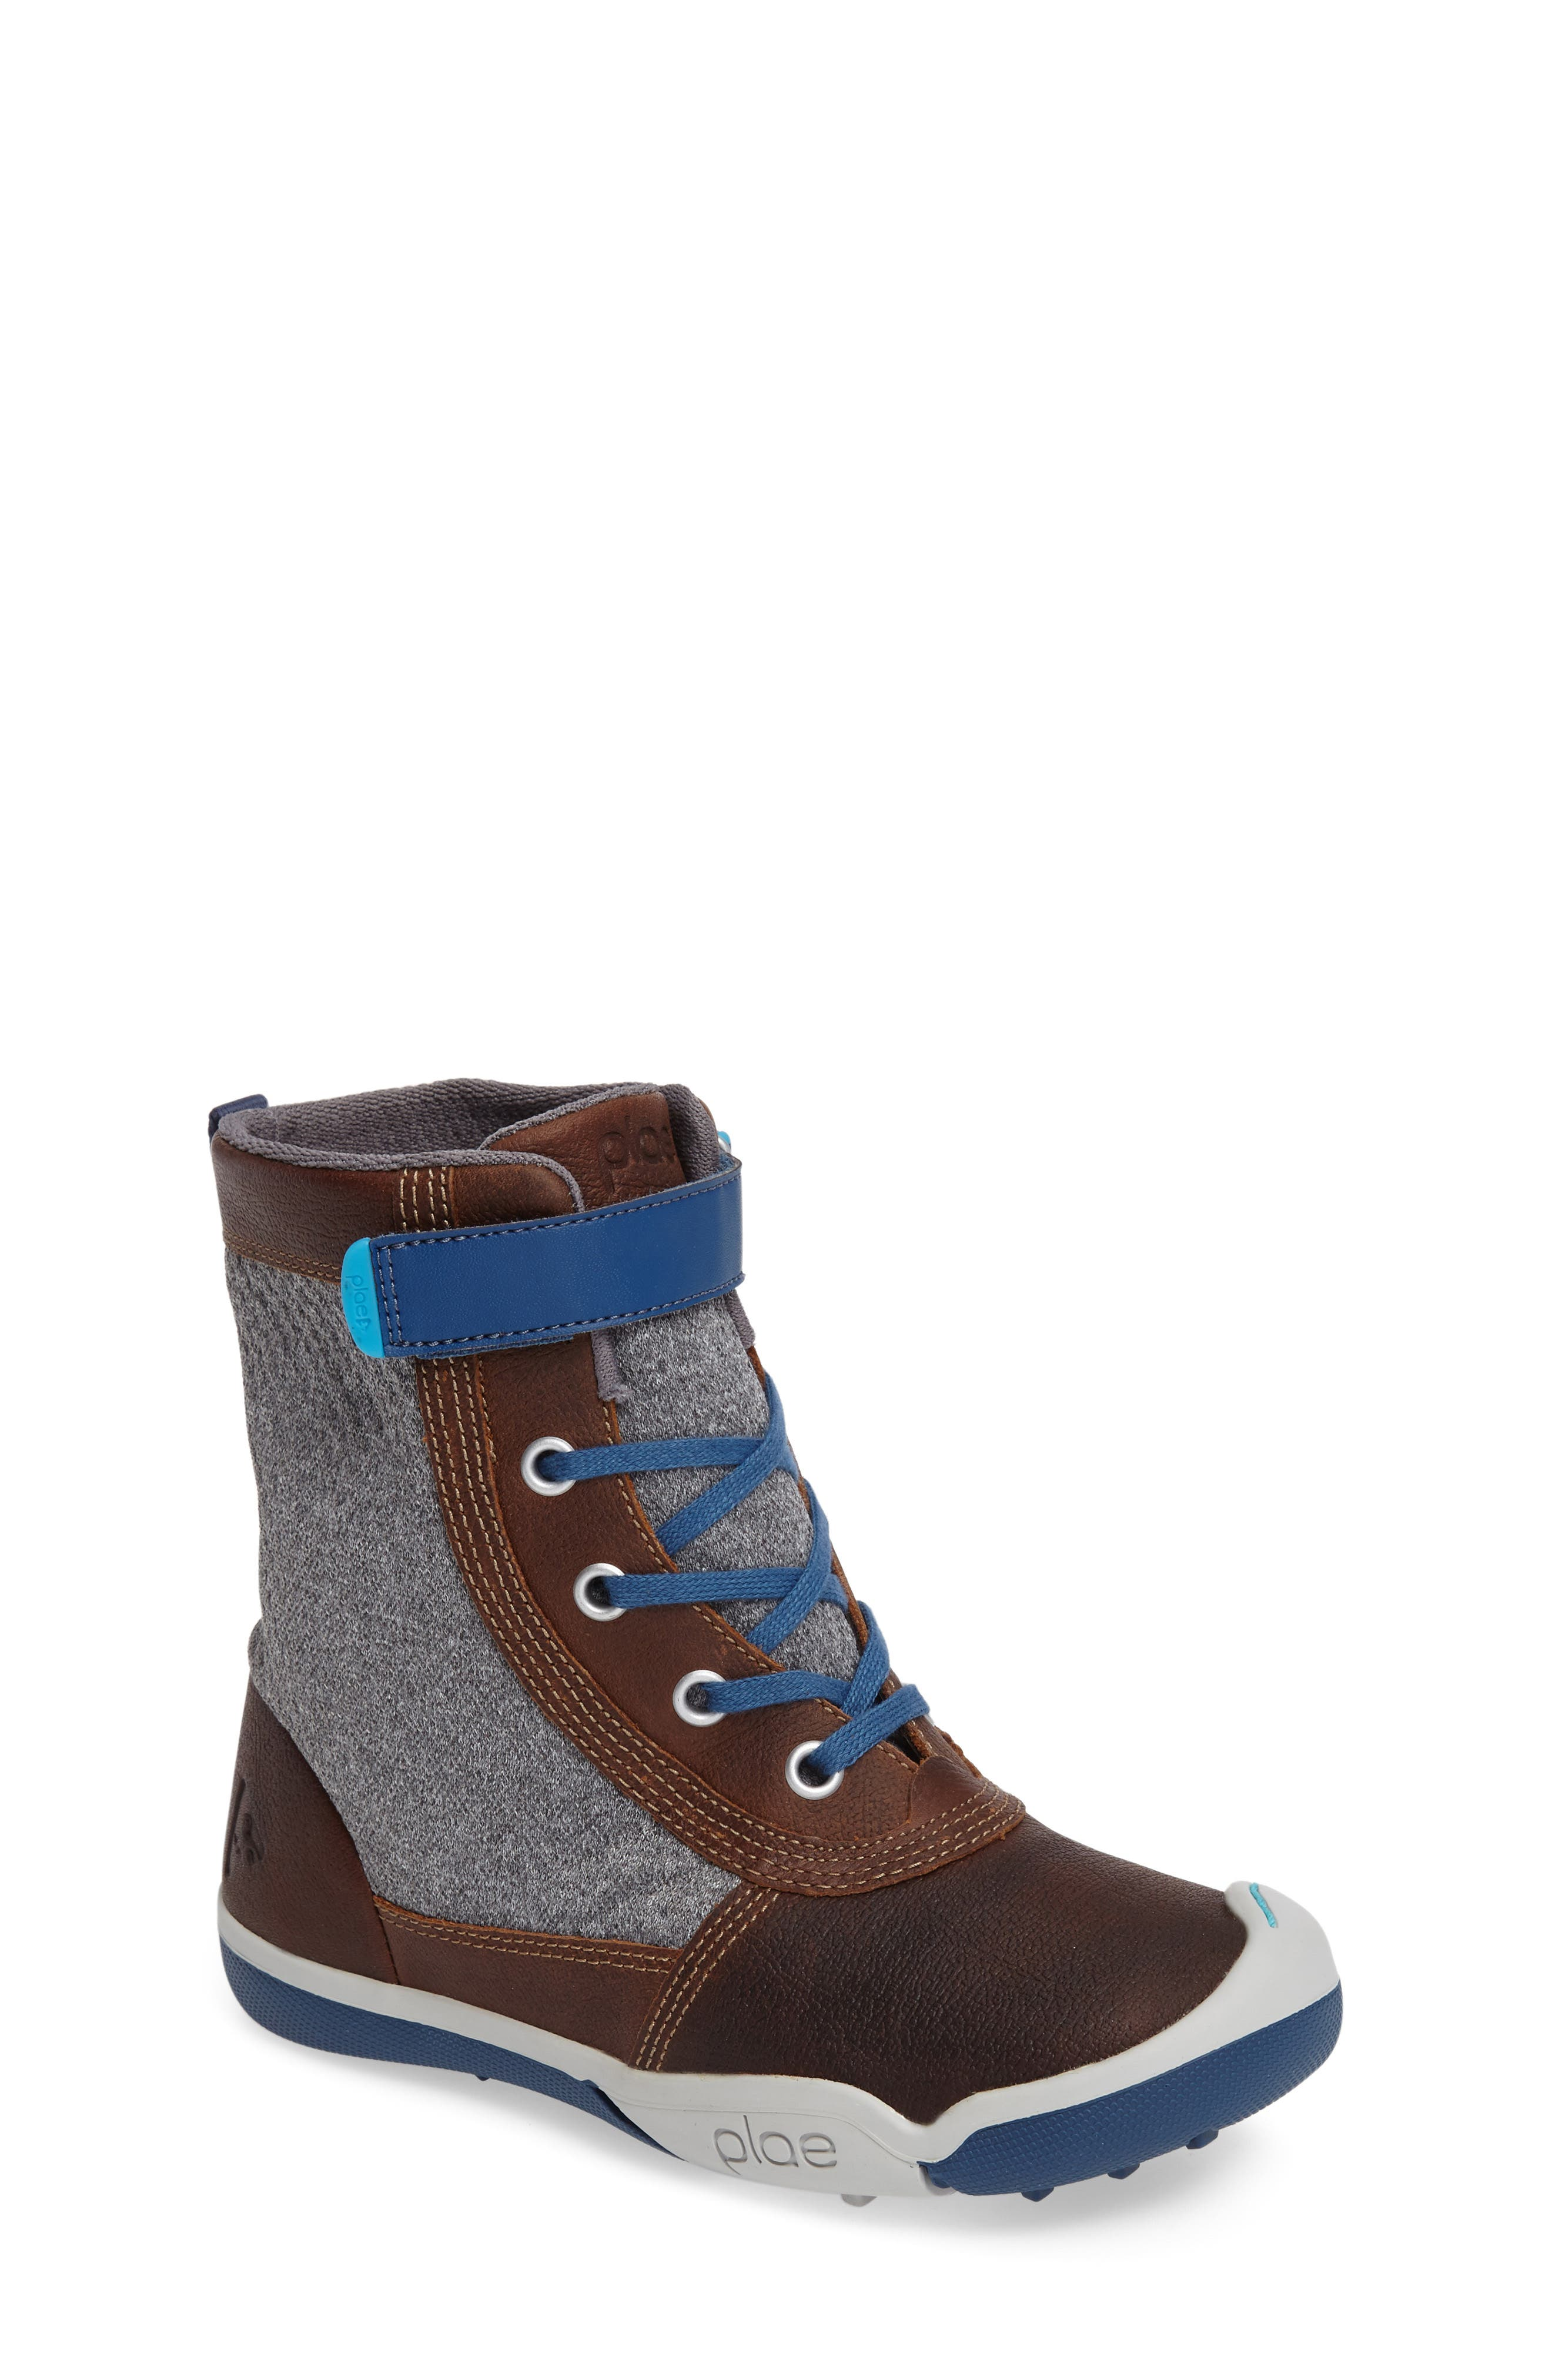 PLAE Noel Customizable Boot